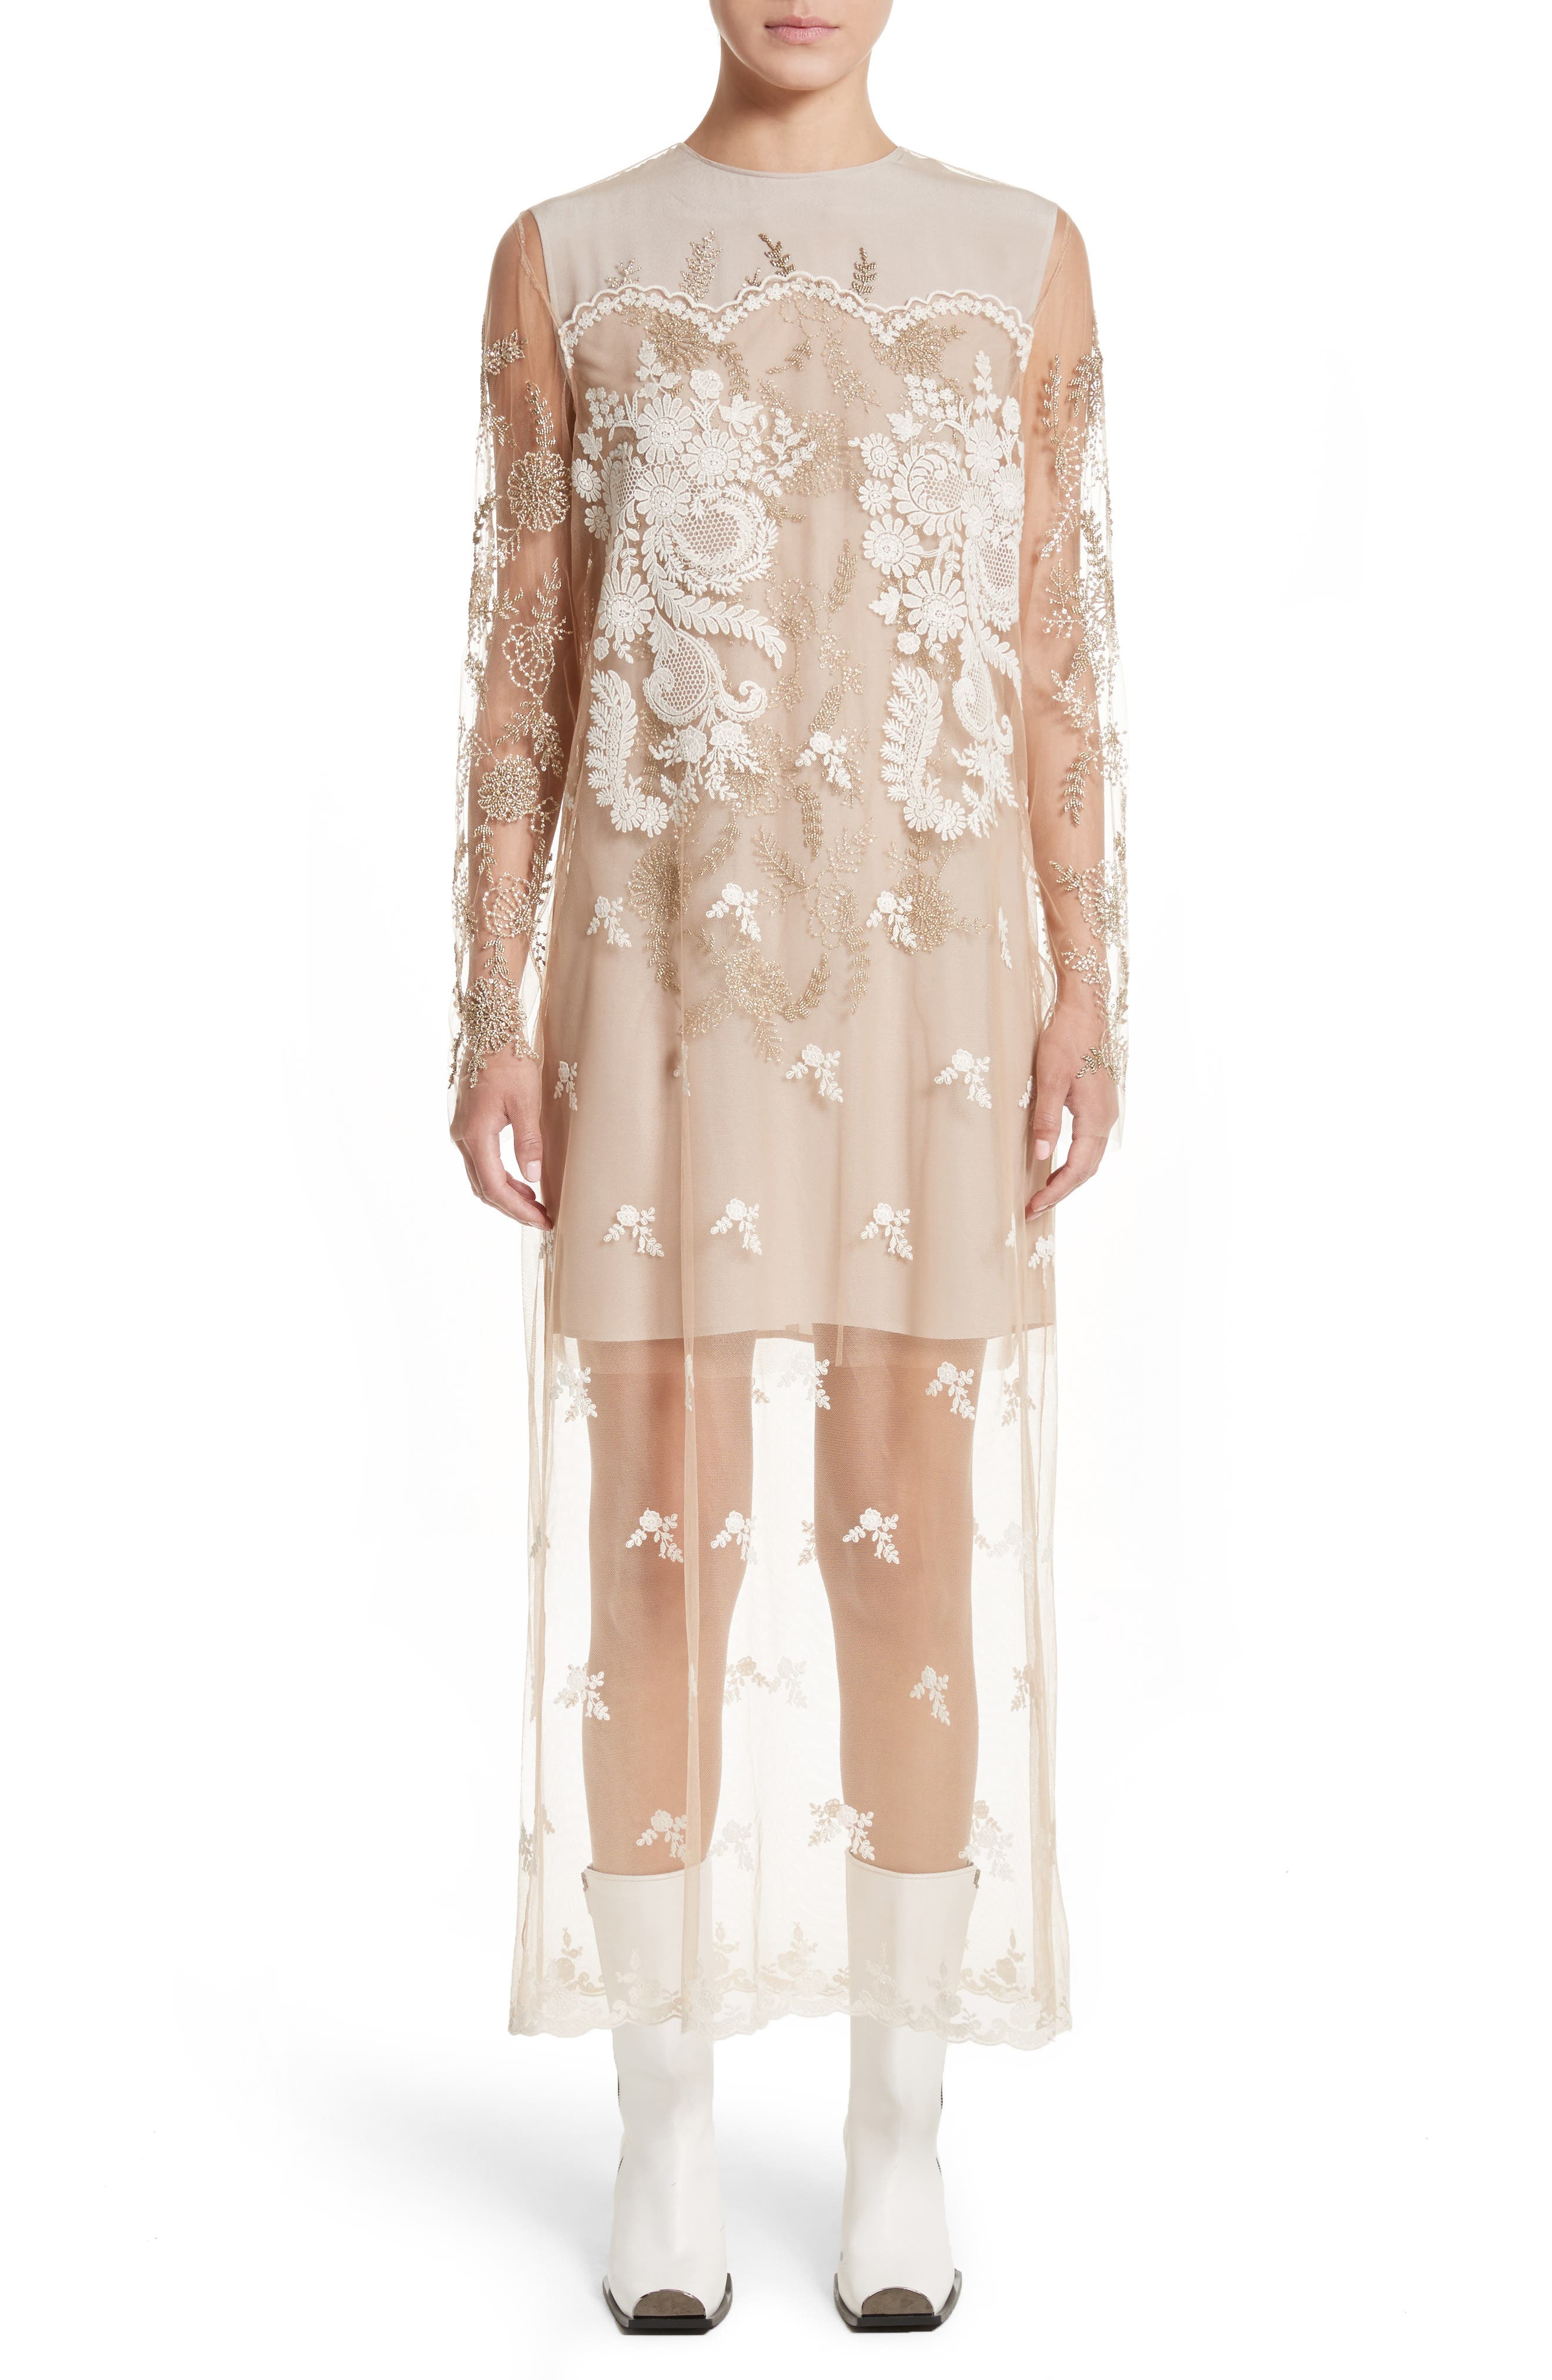 Stella McCartney Embroidered Tulle Lace Dress